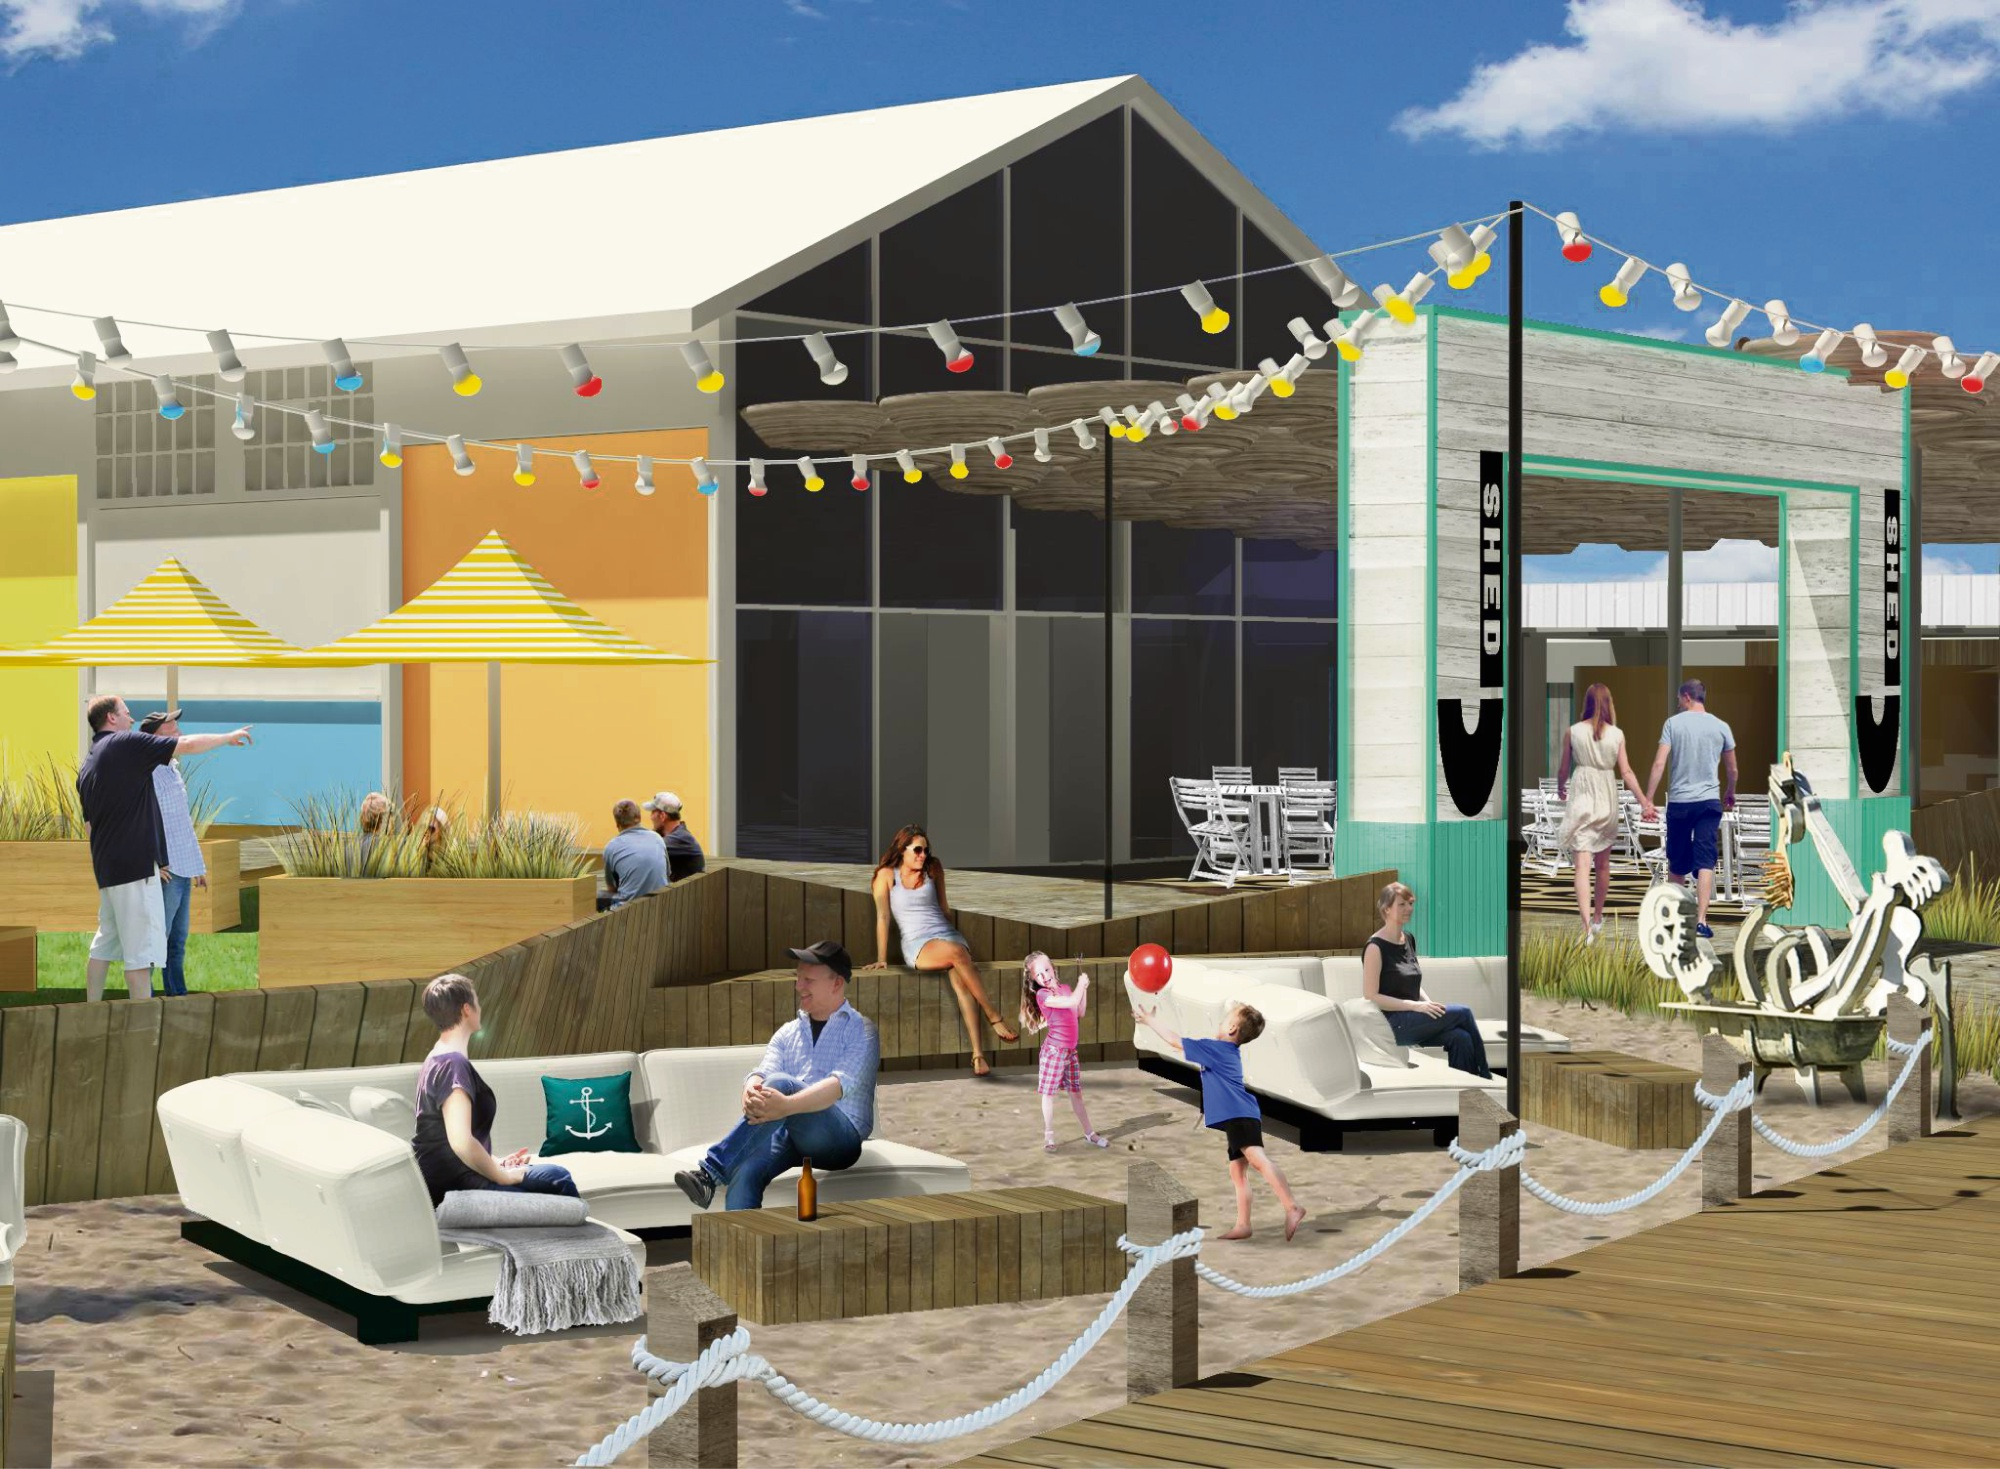 An artist's impression of Sunset Events' new venue proposal for Arthur Head.